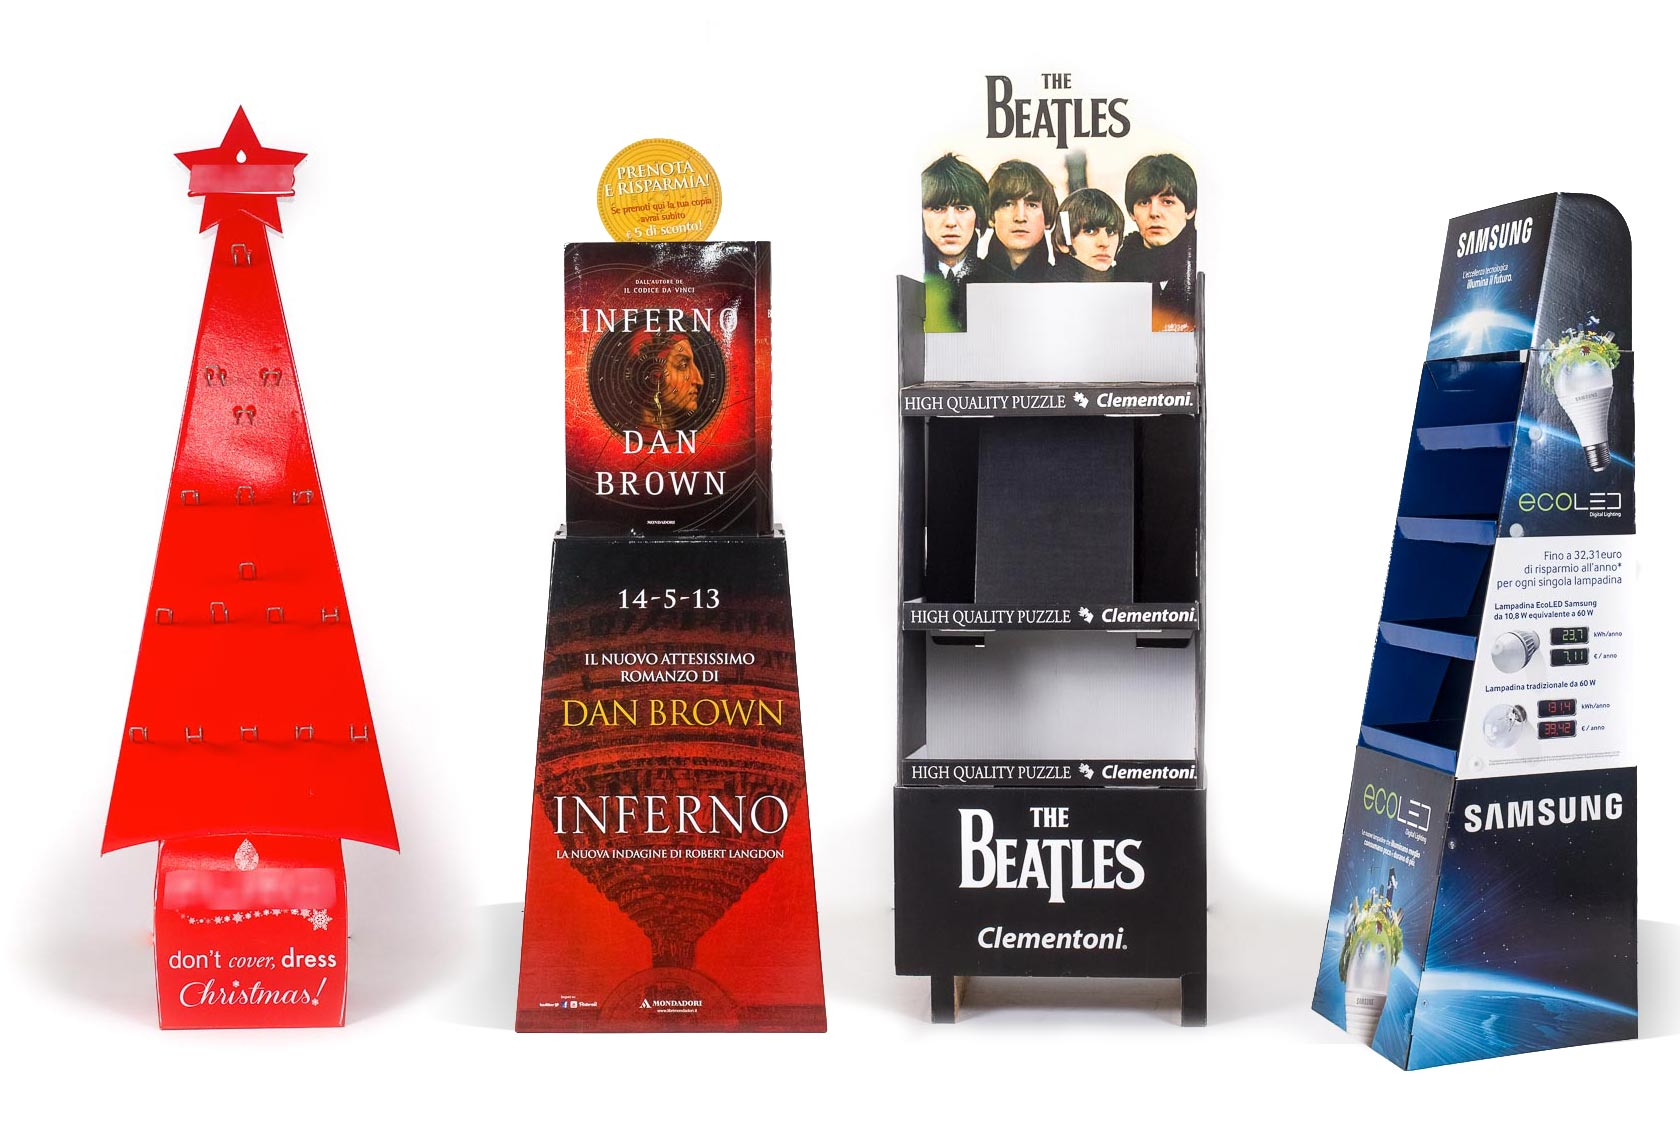 Free-standing display units